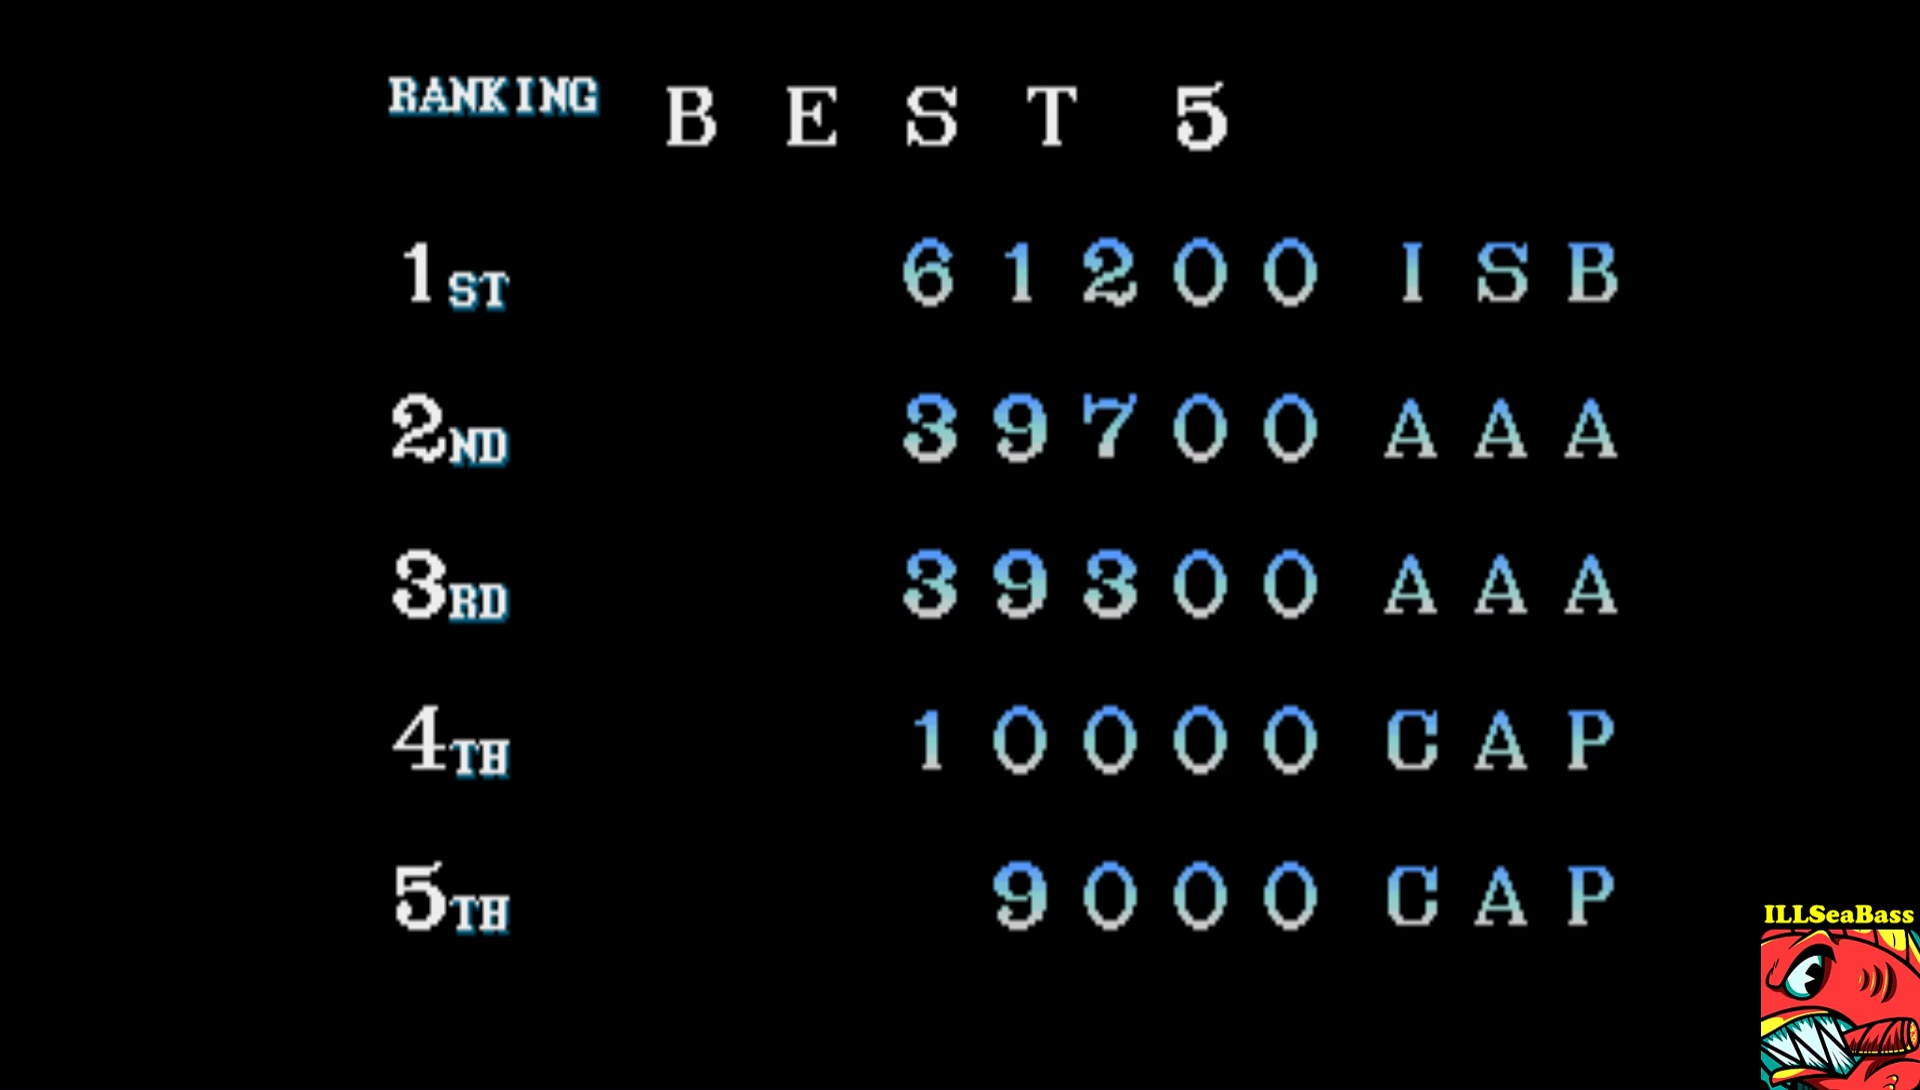 ILLSeaBass: Dynasty Wars [dynwar] (Arcade Emulated / M.A.M.E.) 61,200 points on 2017-09-04 17:41:07